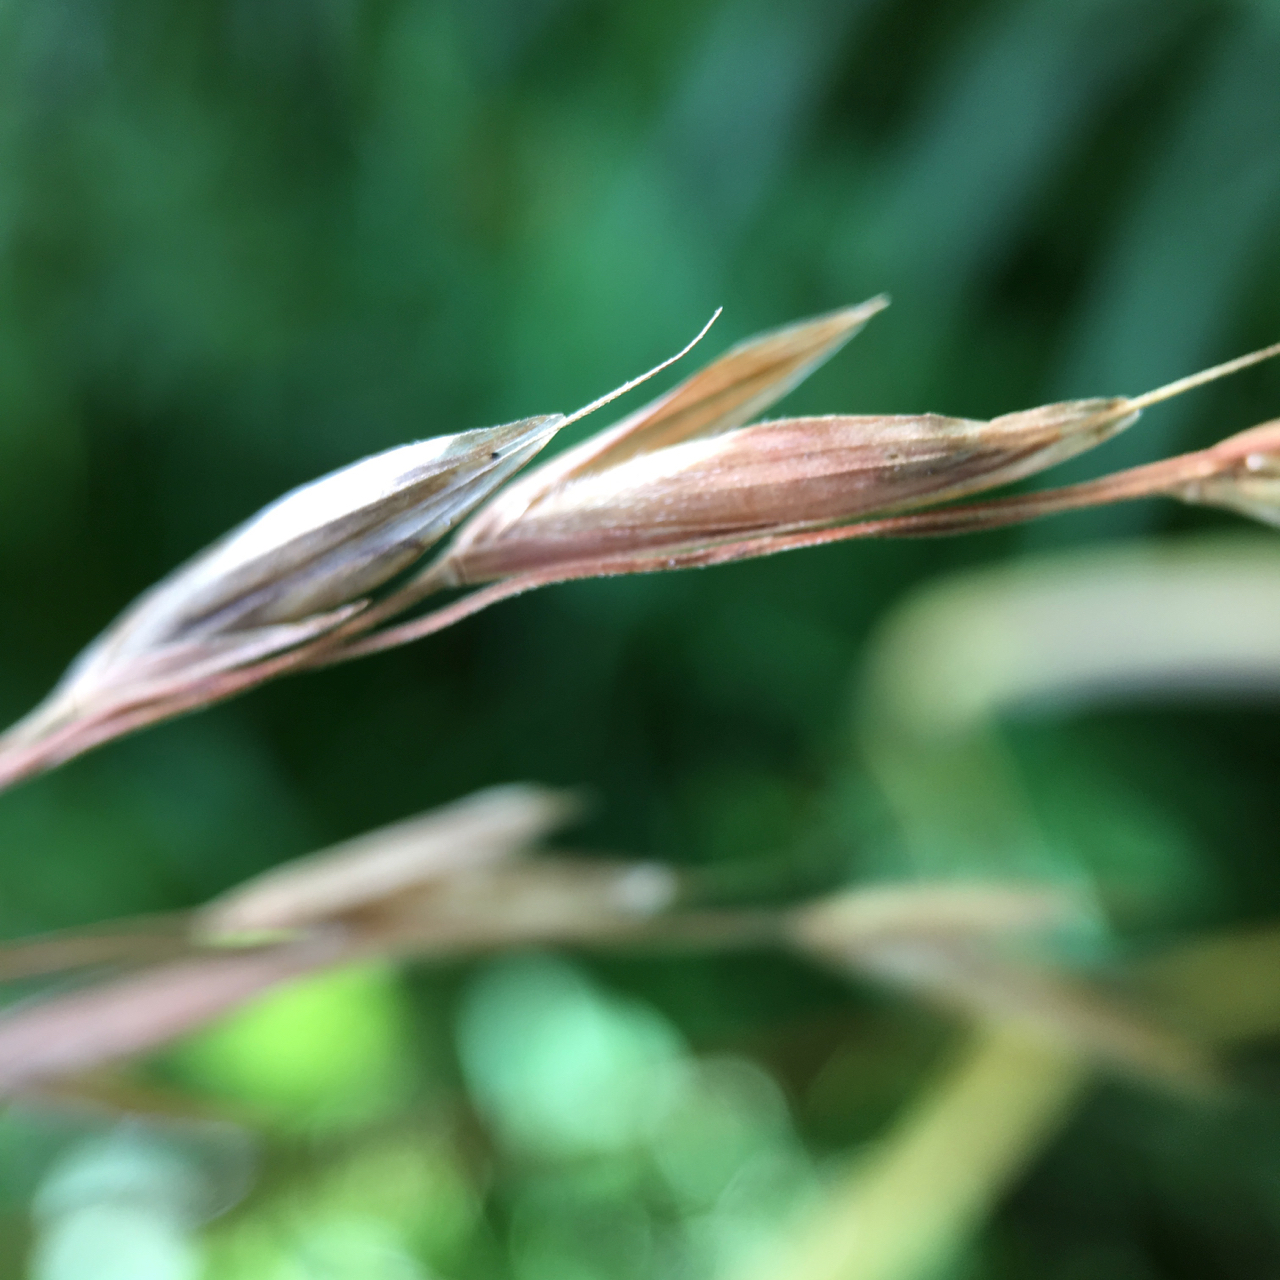 seed head of native grasses growing on the banks of the Thames River, London, Ontario